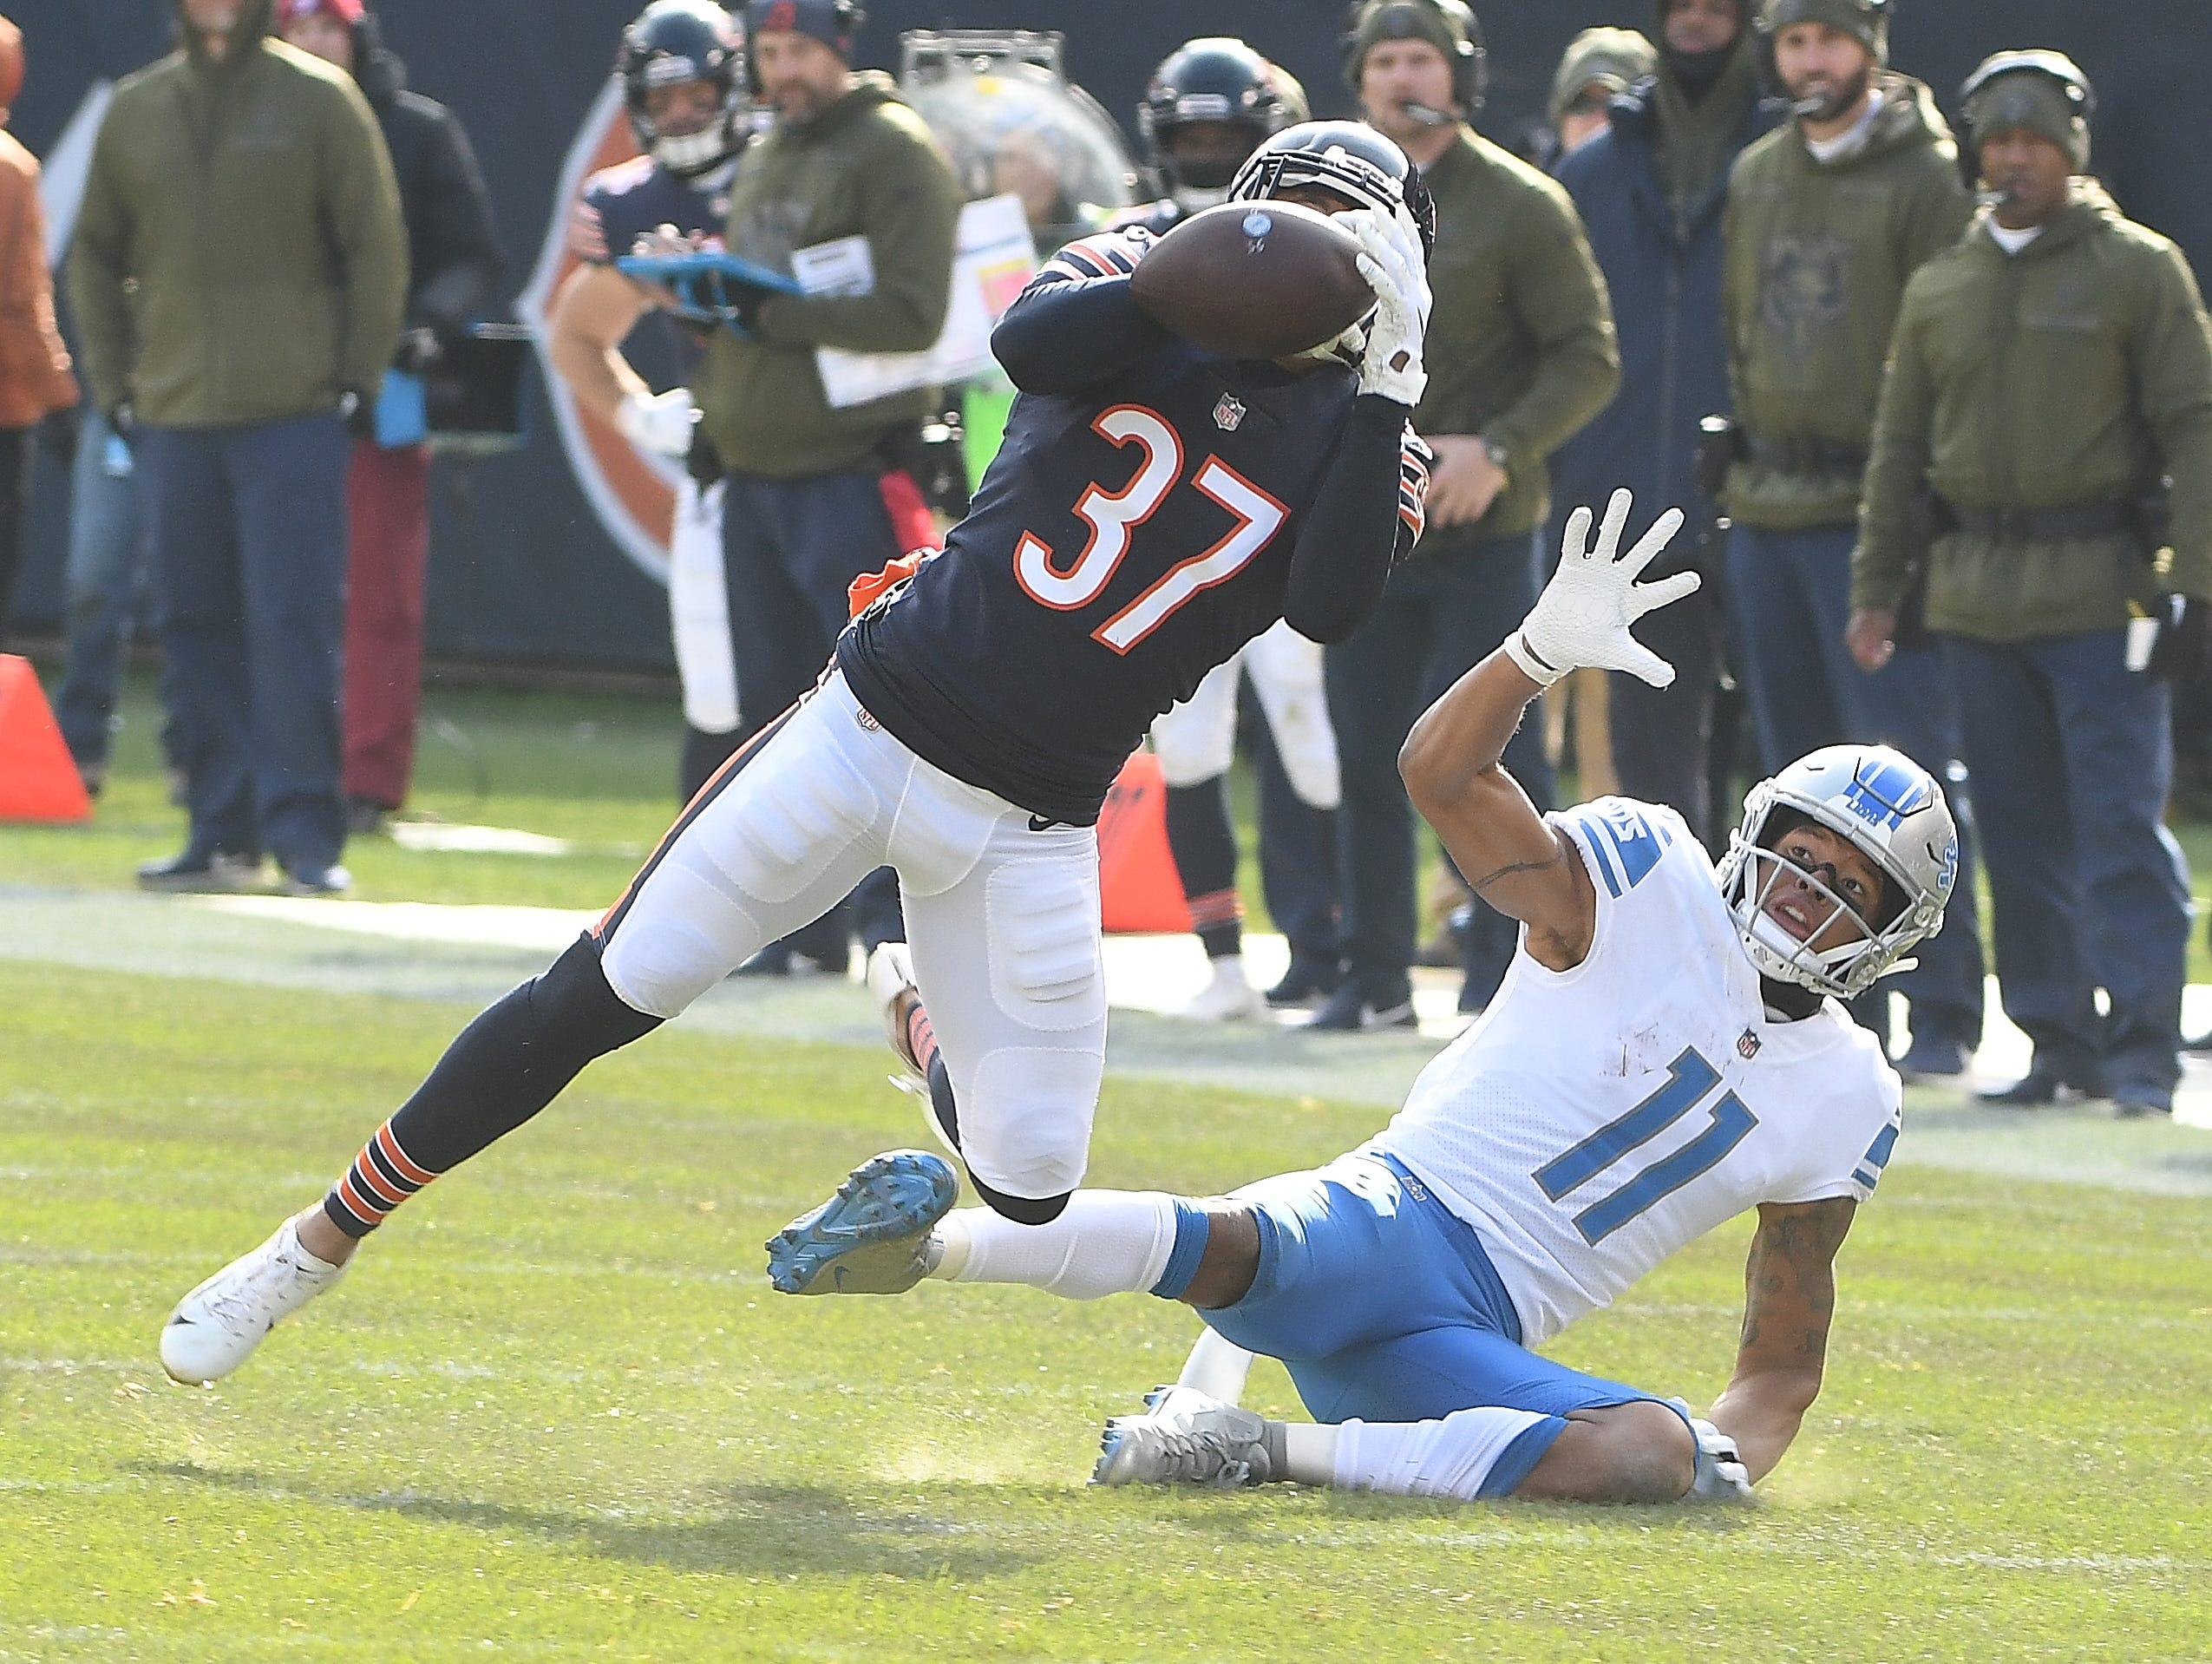 Bears' Bryce Callahan picks off a Lions quarterback Matthew Stafford pass intended for wide receiver Marvin Jones Jr. in the second quarter.